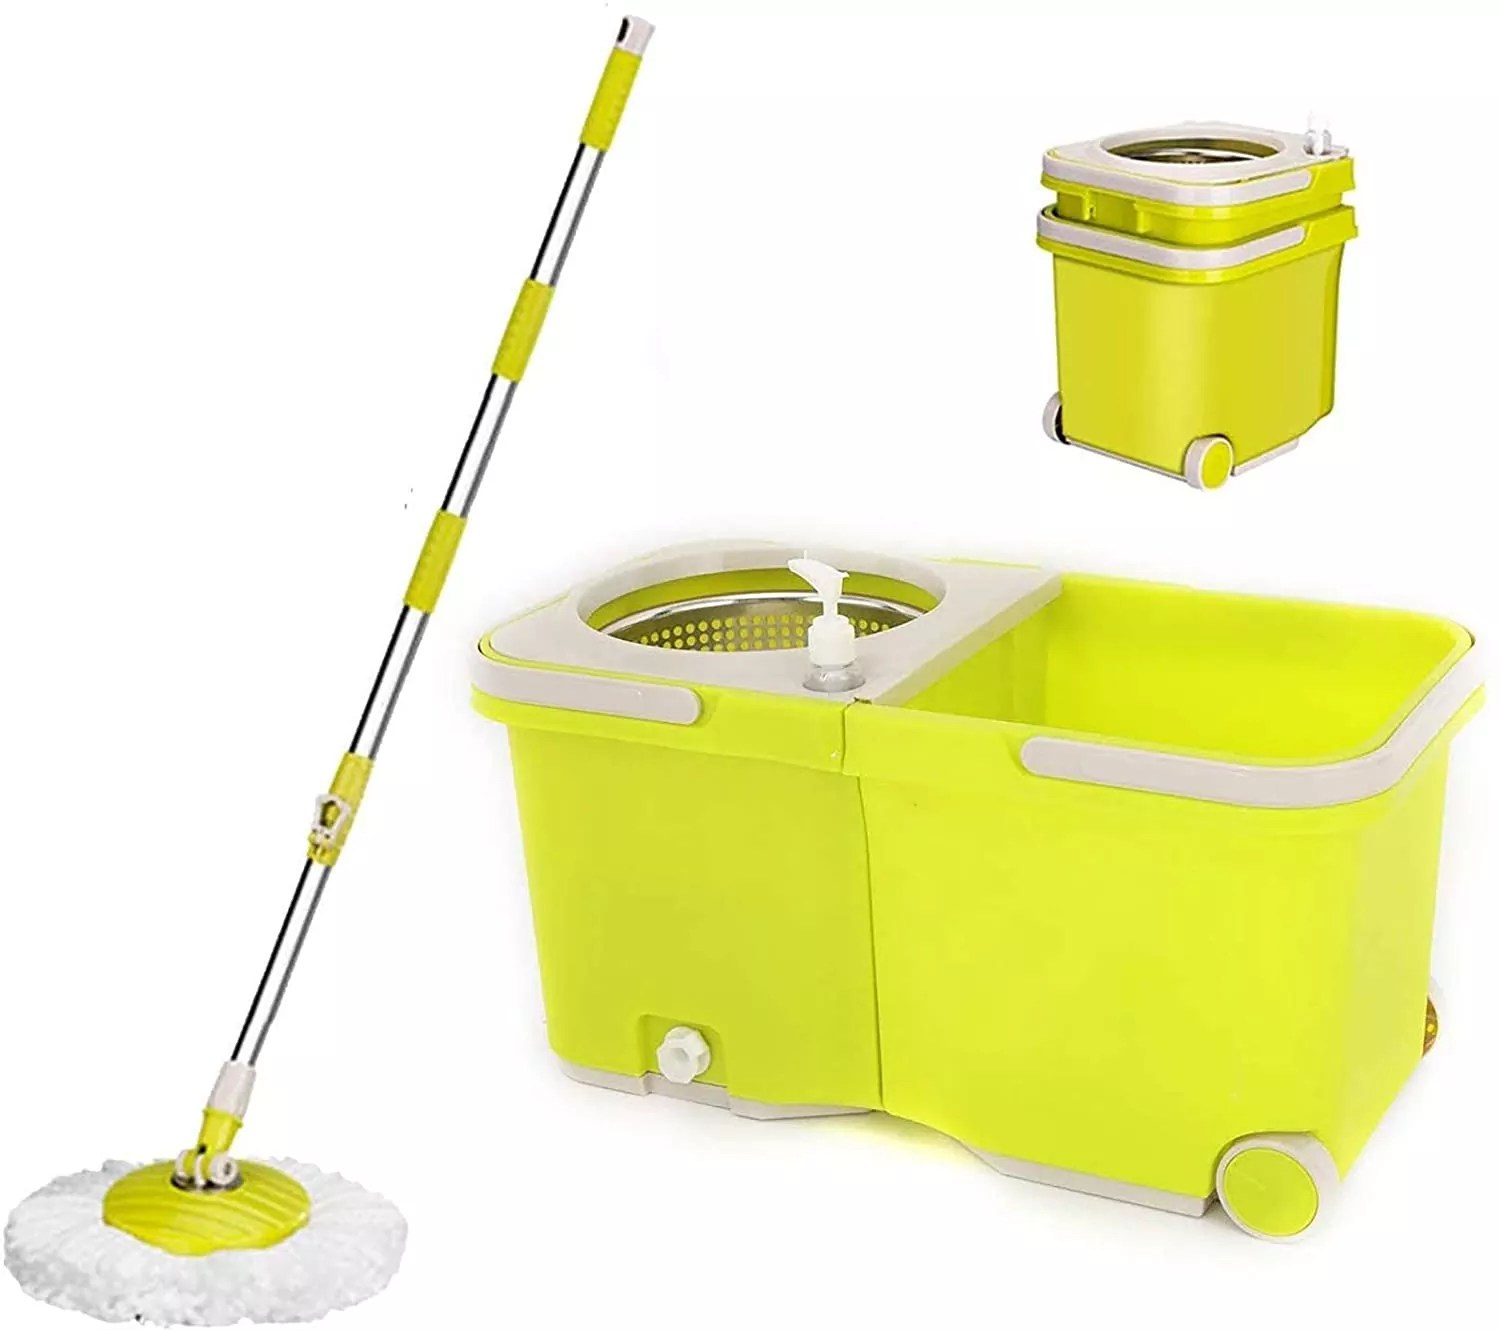 UMIEN Spin Mop and Bucket System – 360° Self Wringing Spinning Mop with Stackable Bucket On Wheels